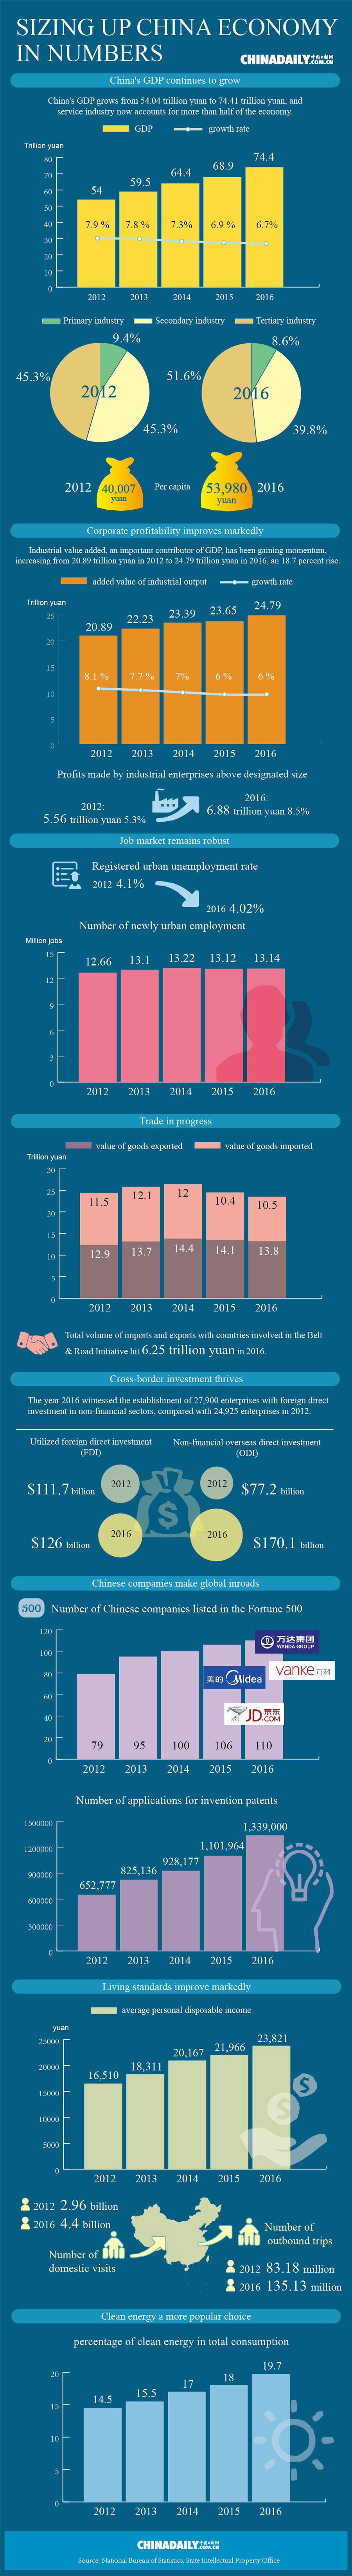 Infographic: Sizing up China economy in numbers